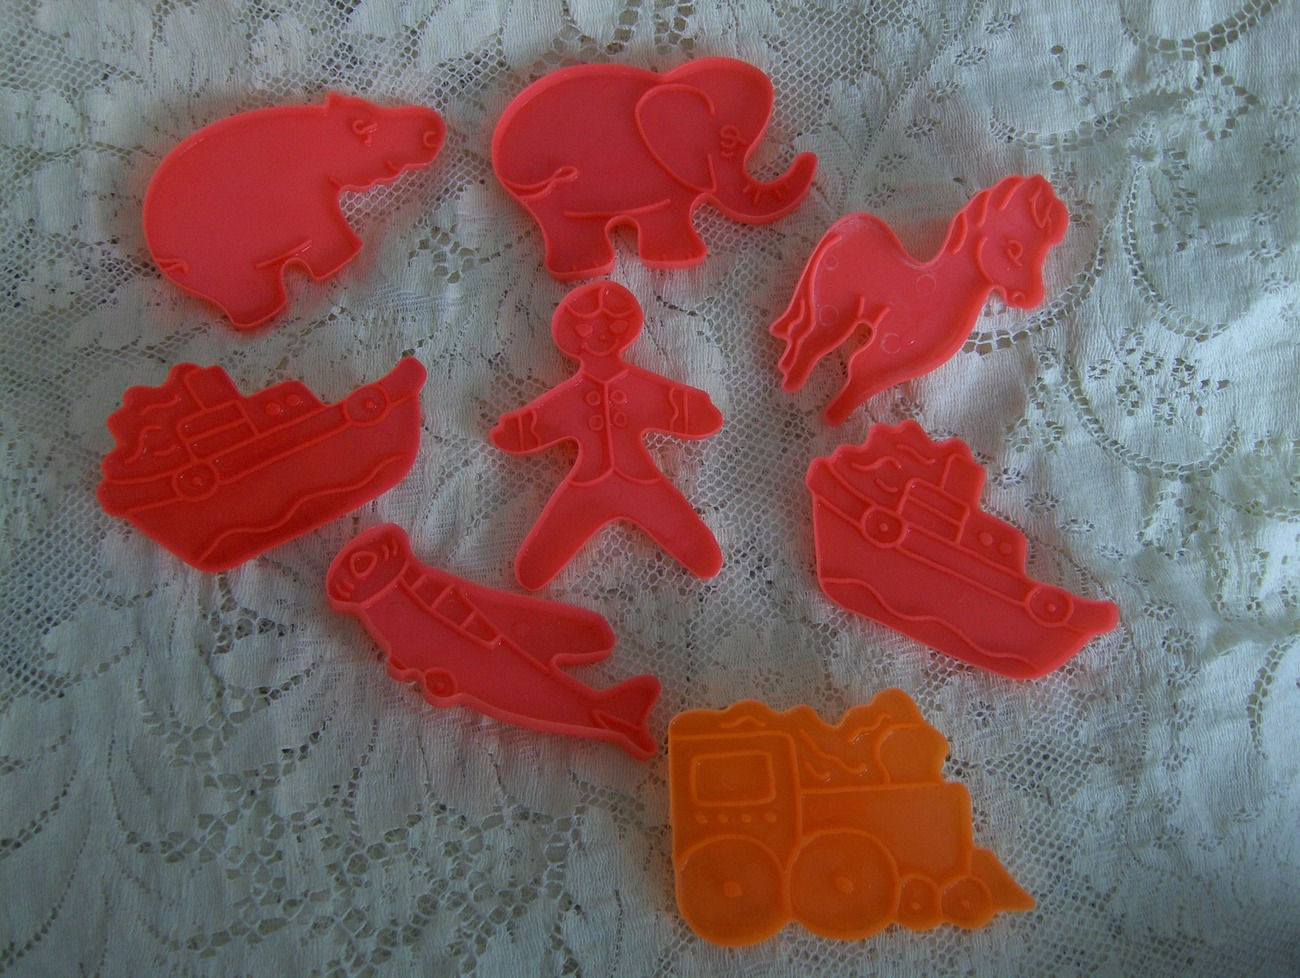 Vintage 70s Childrens Themed Cookie Cutters/Toast Stamps 8 Pcs Classic